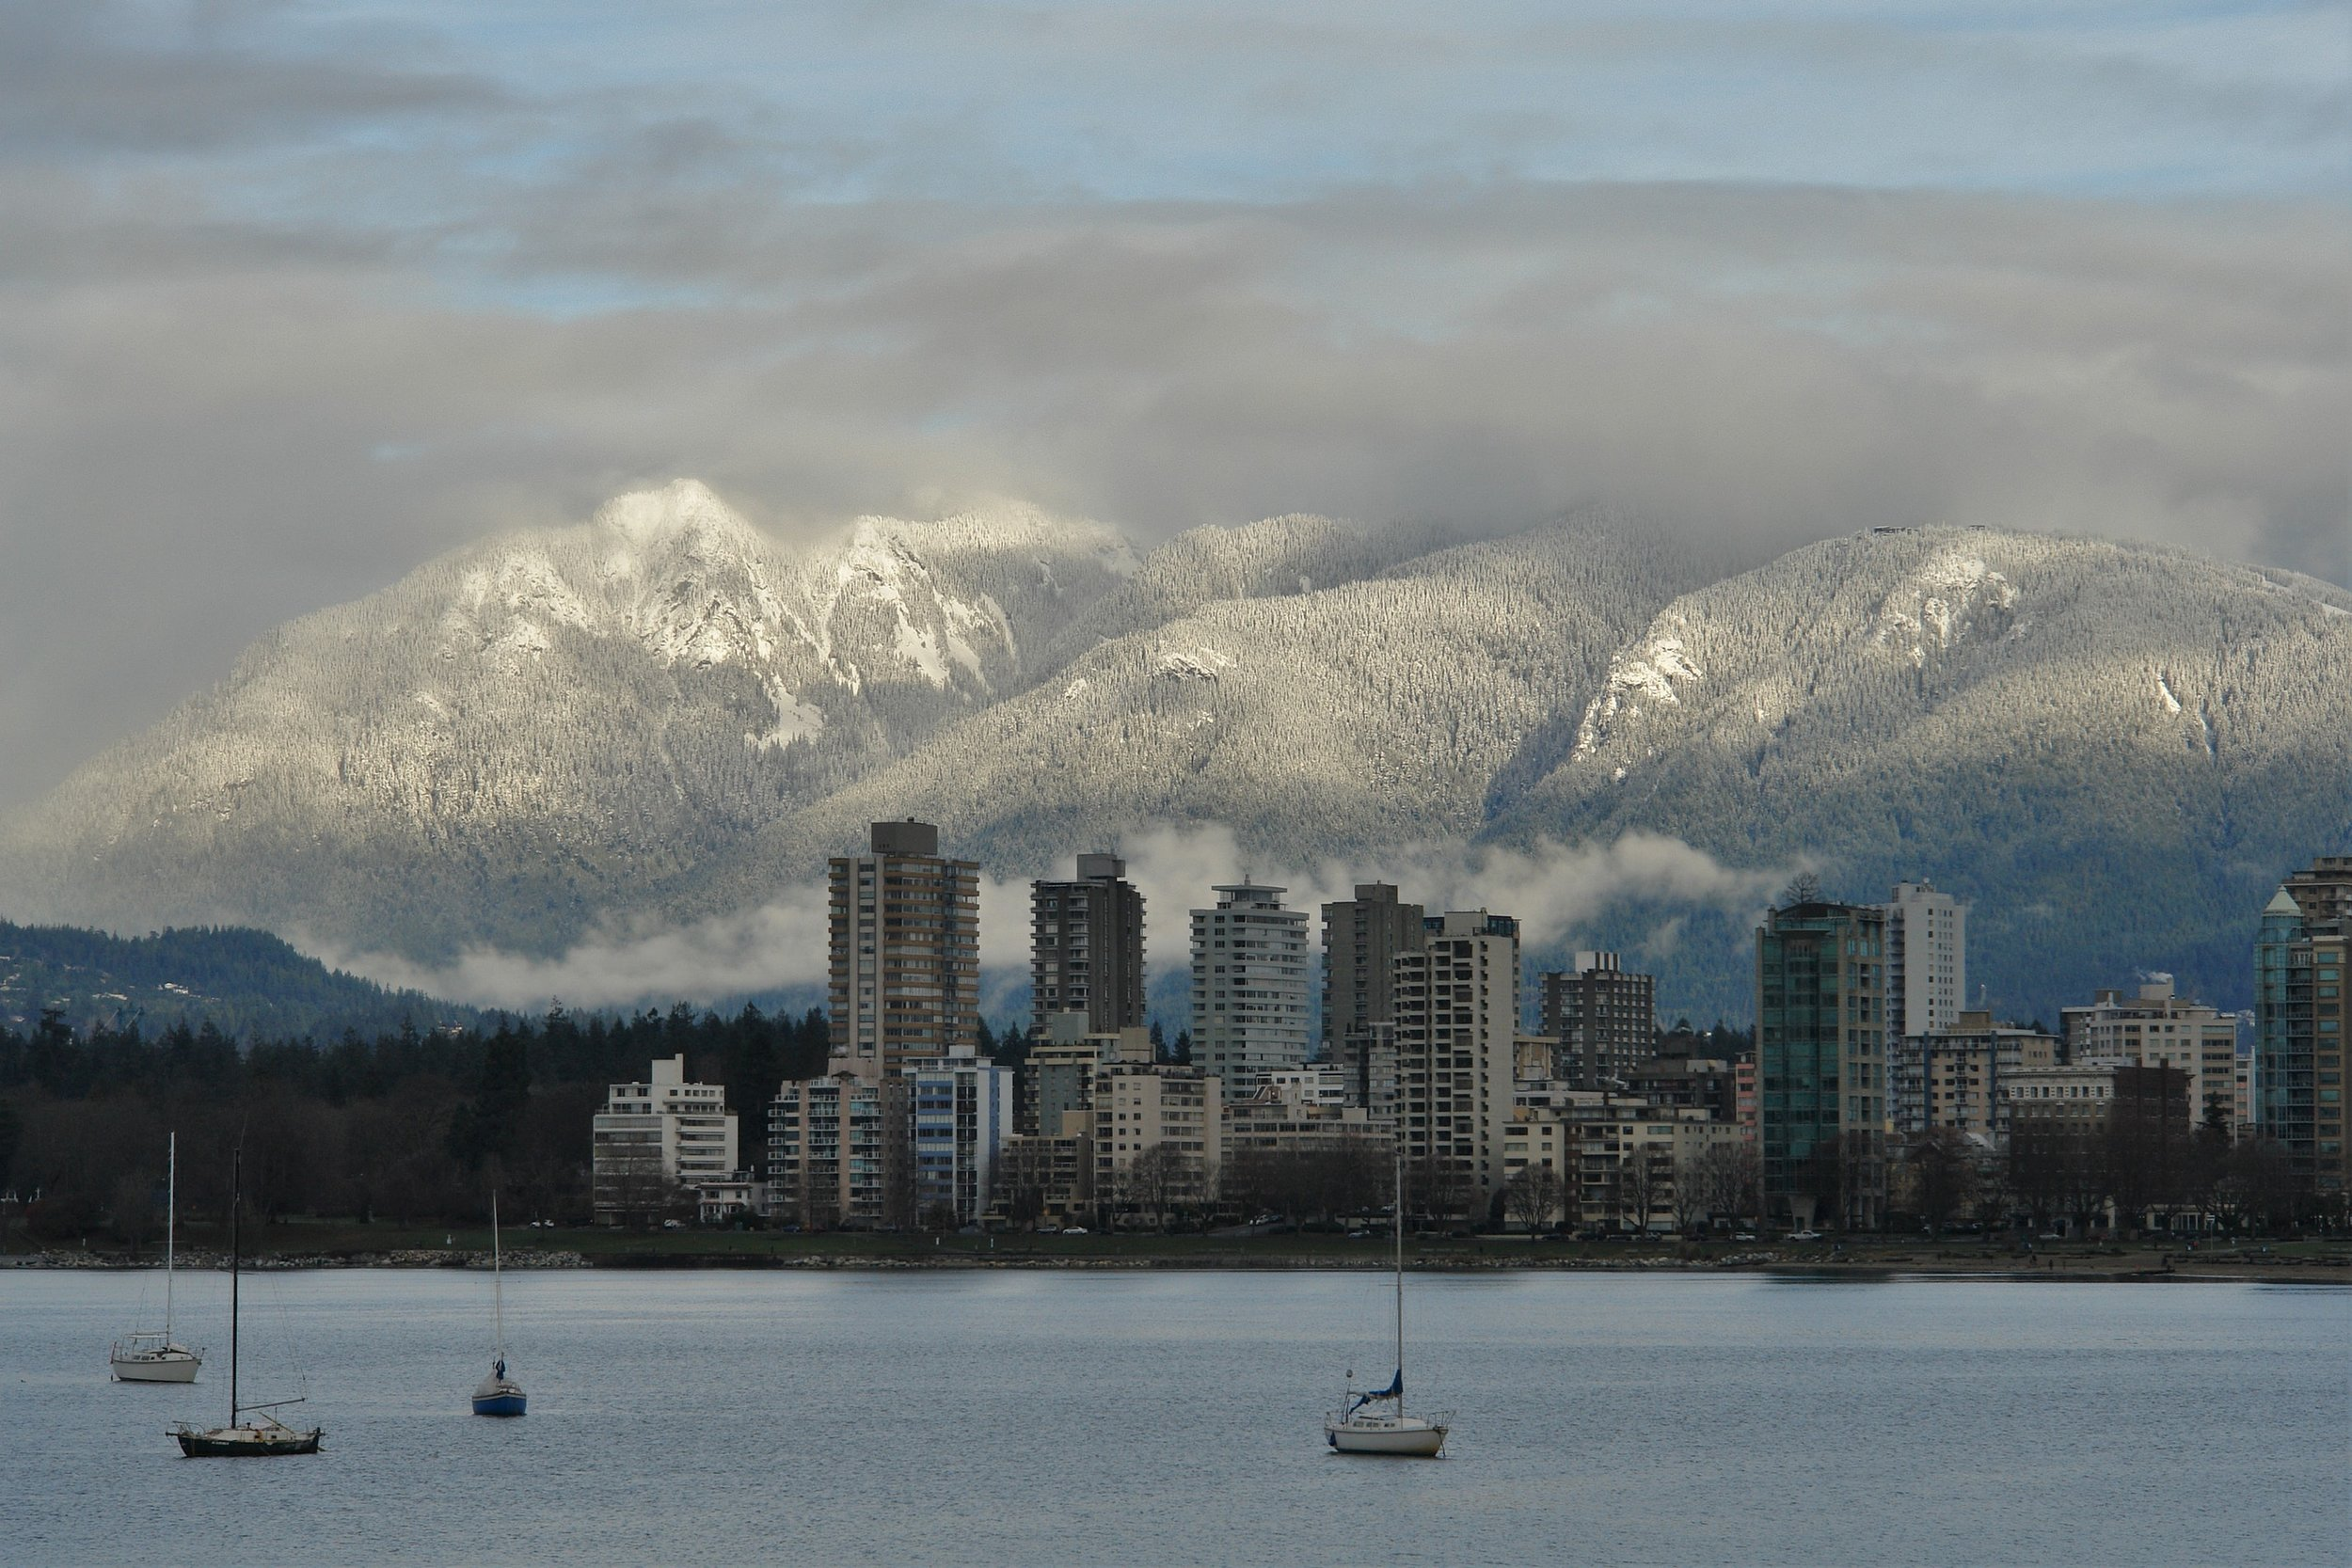 Waterfront view of Vancouver buildings with mountains in the background